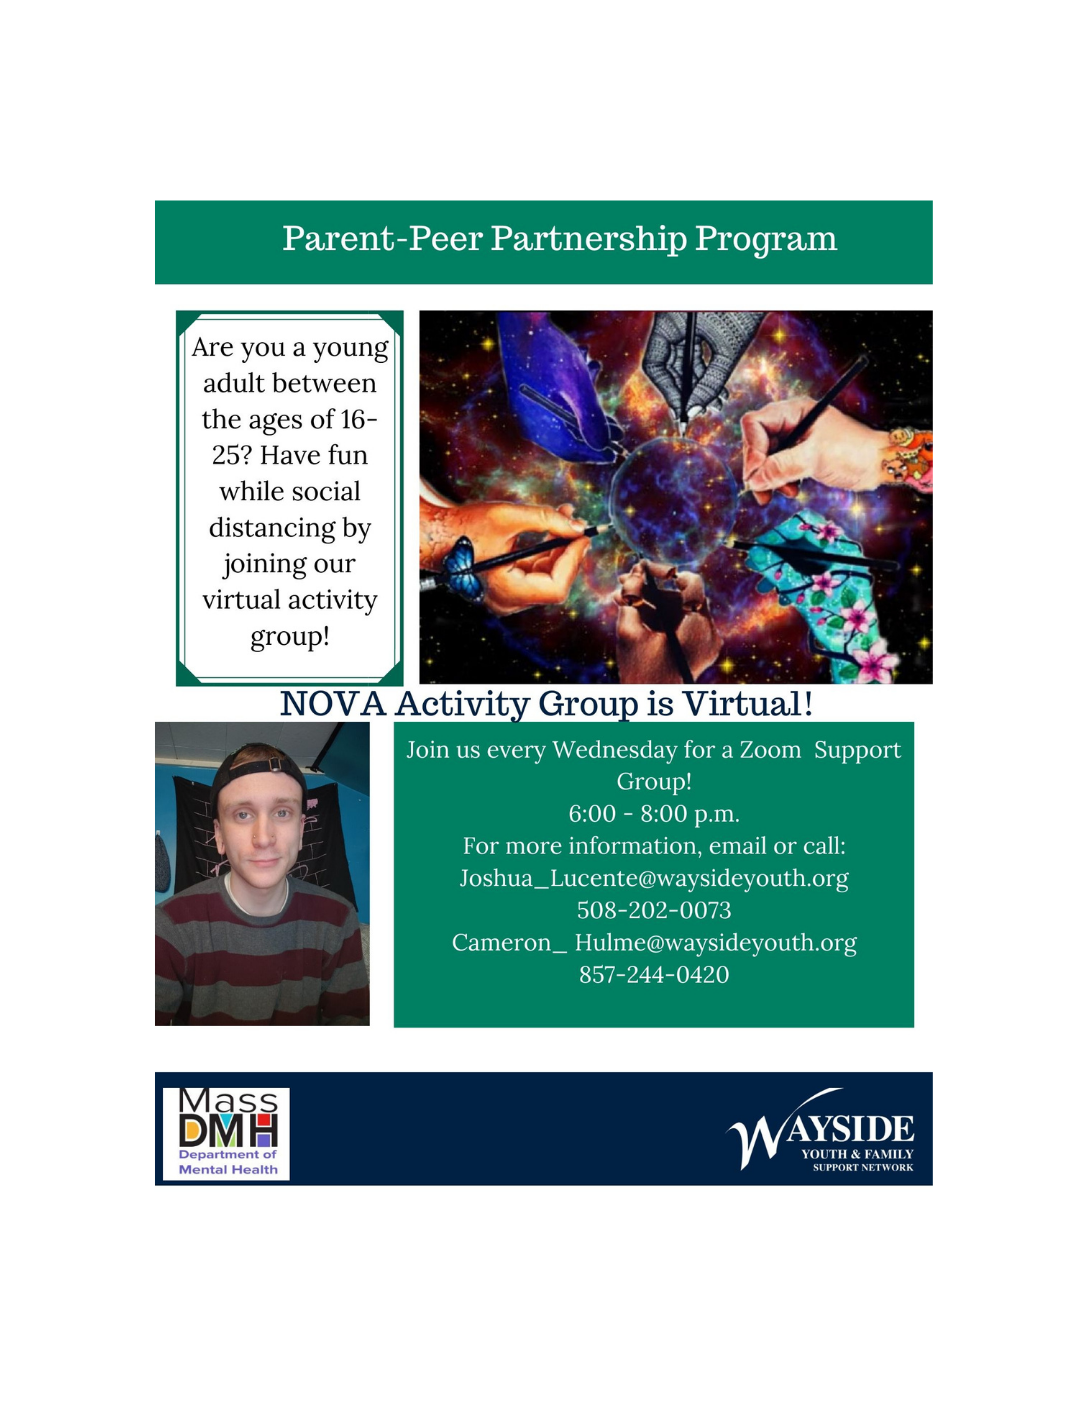 NOVA Activity Group: Virtual Group for Young Adults (16-25) - Hosted by Wayside Youth & Family Support Network